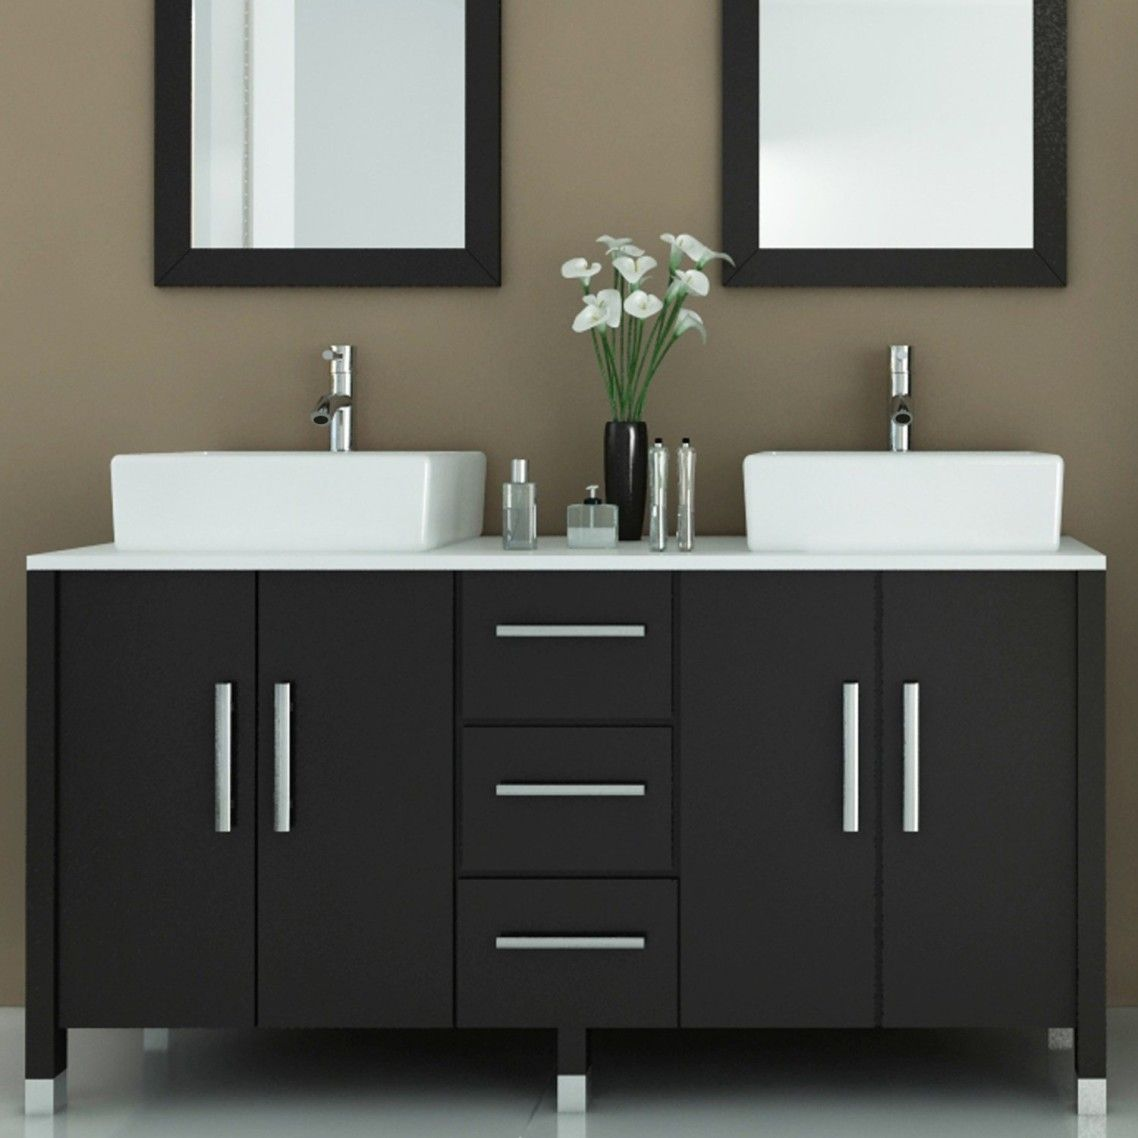 Black Painted Wooden Double Vanity Mixed White Porcelain Vessel